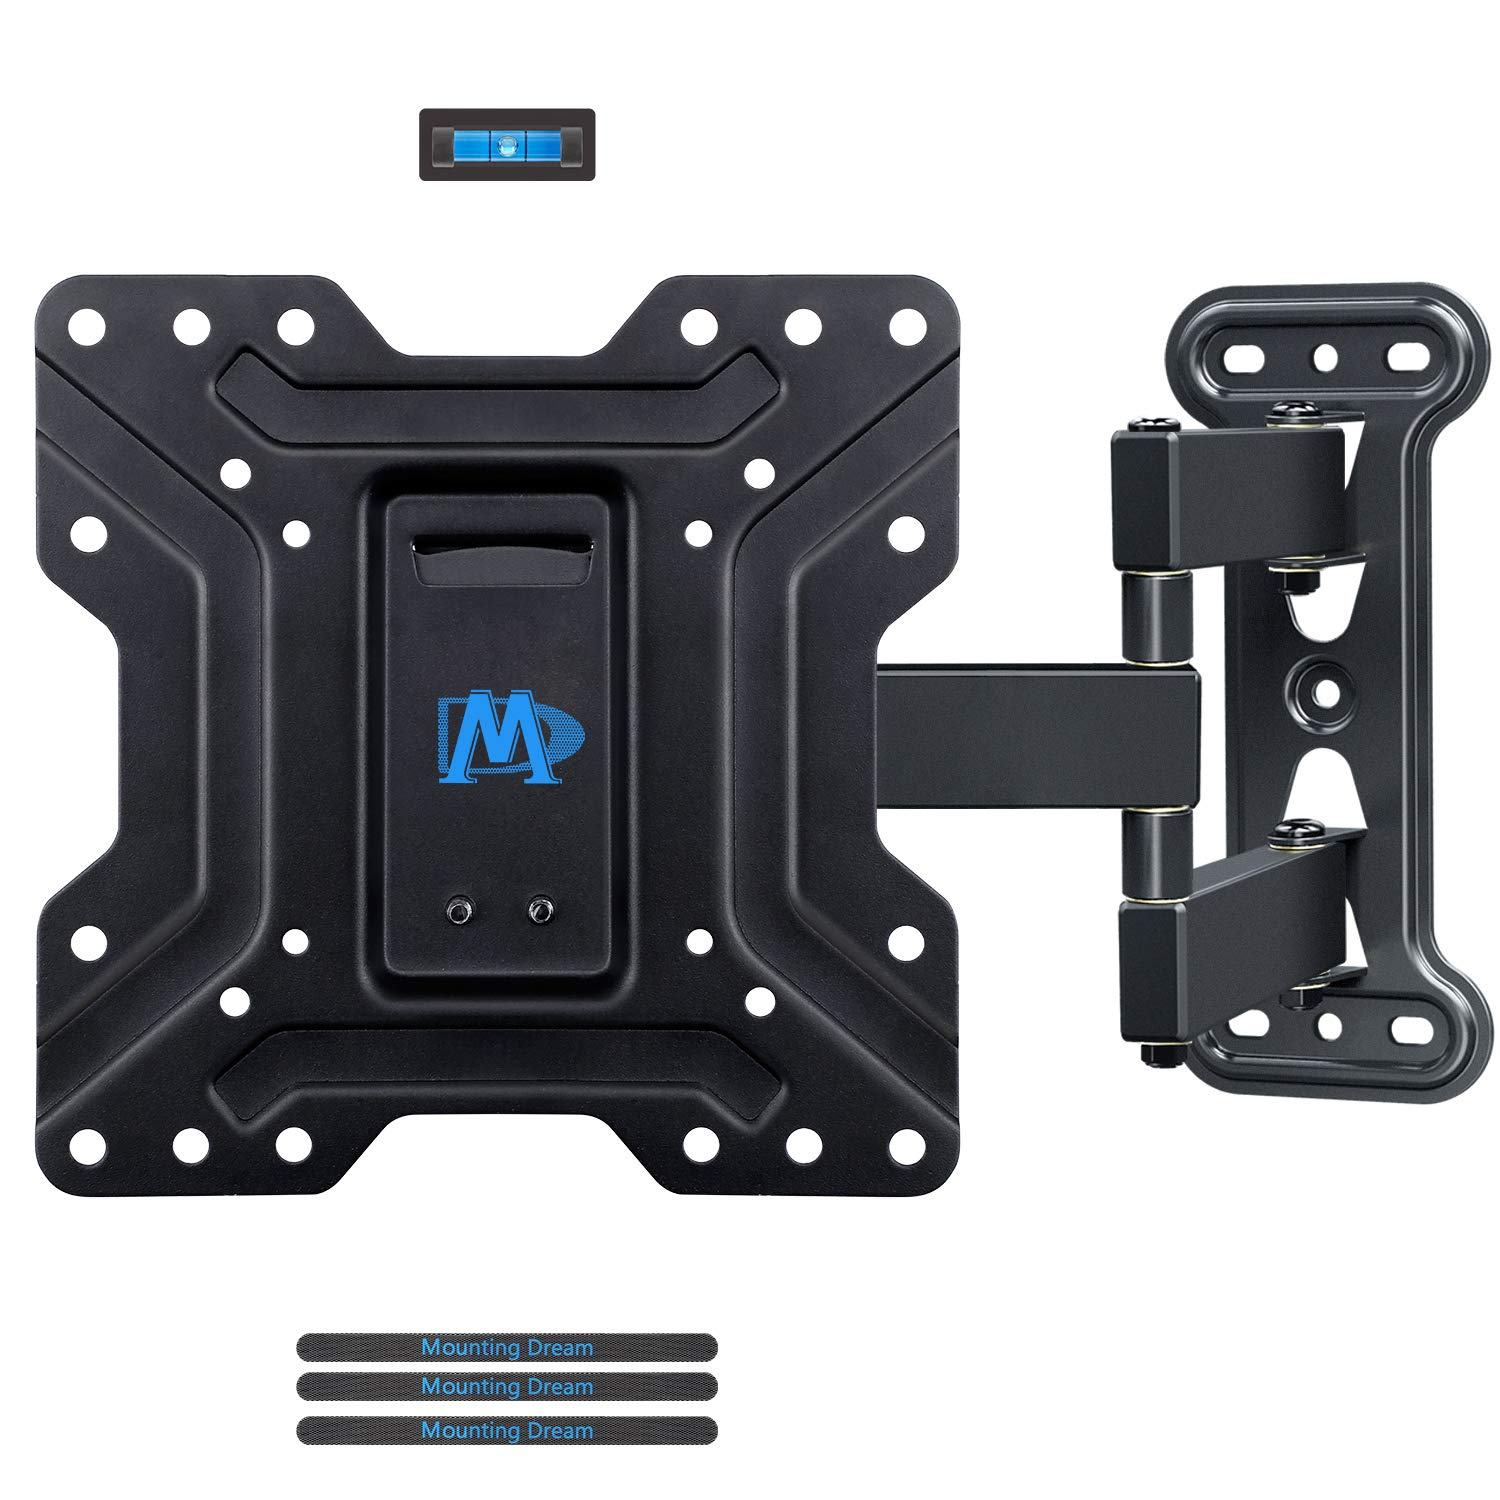 """Mounting Dream TV Wall Mounts TV Brackets for Most 17-39"""" Flat Screen TV, Full Motion TV Mounts with Swivel Articulating 18.8"""" in Extension Arm, up to 60lb VESA 200x200, Perfect Center Design,MD2413-S"""